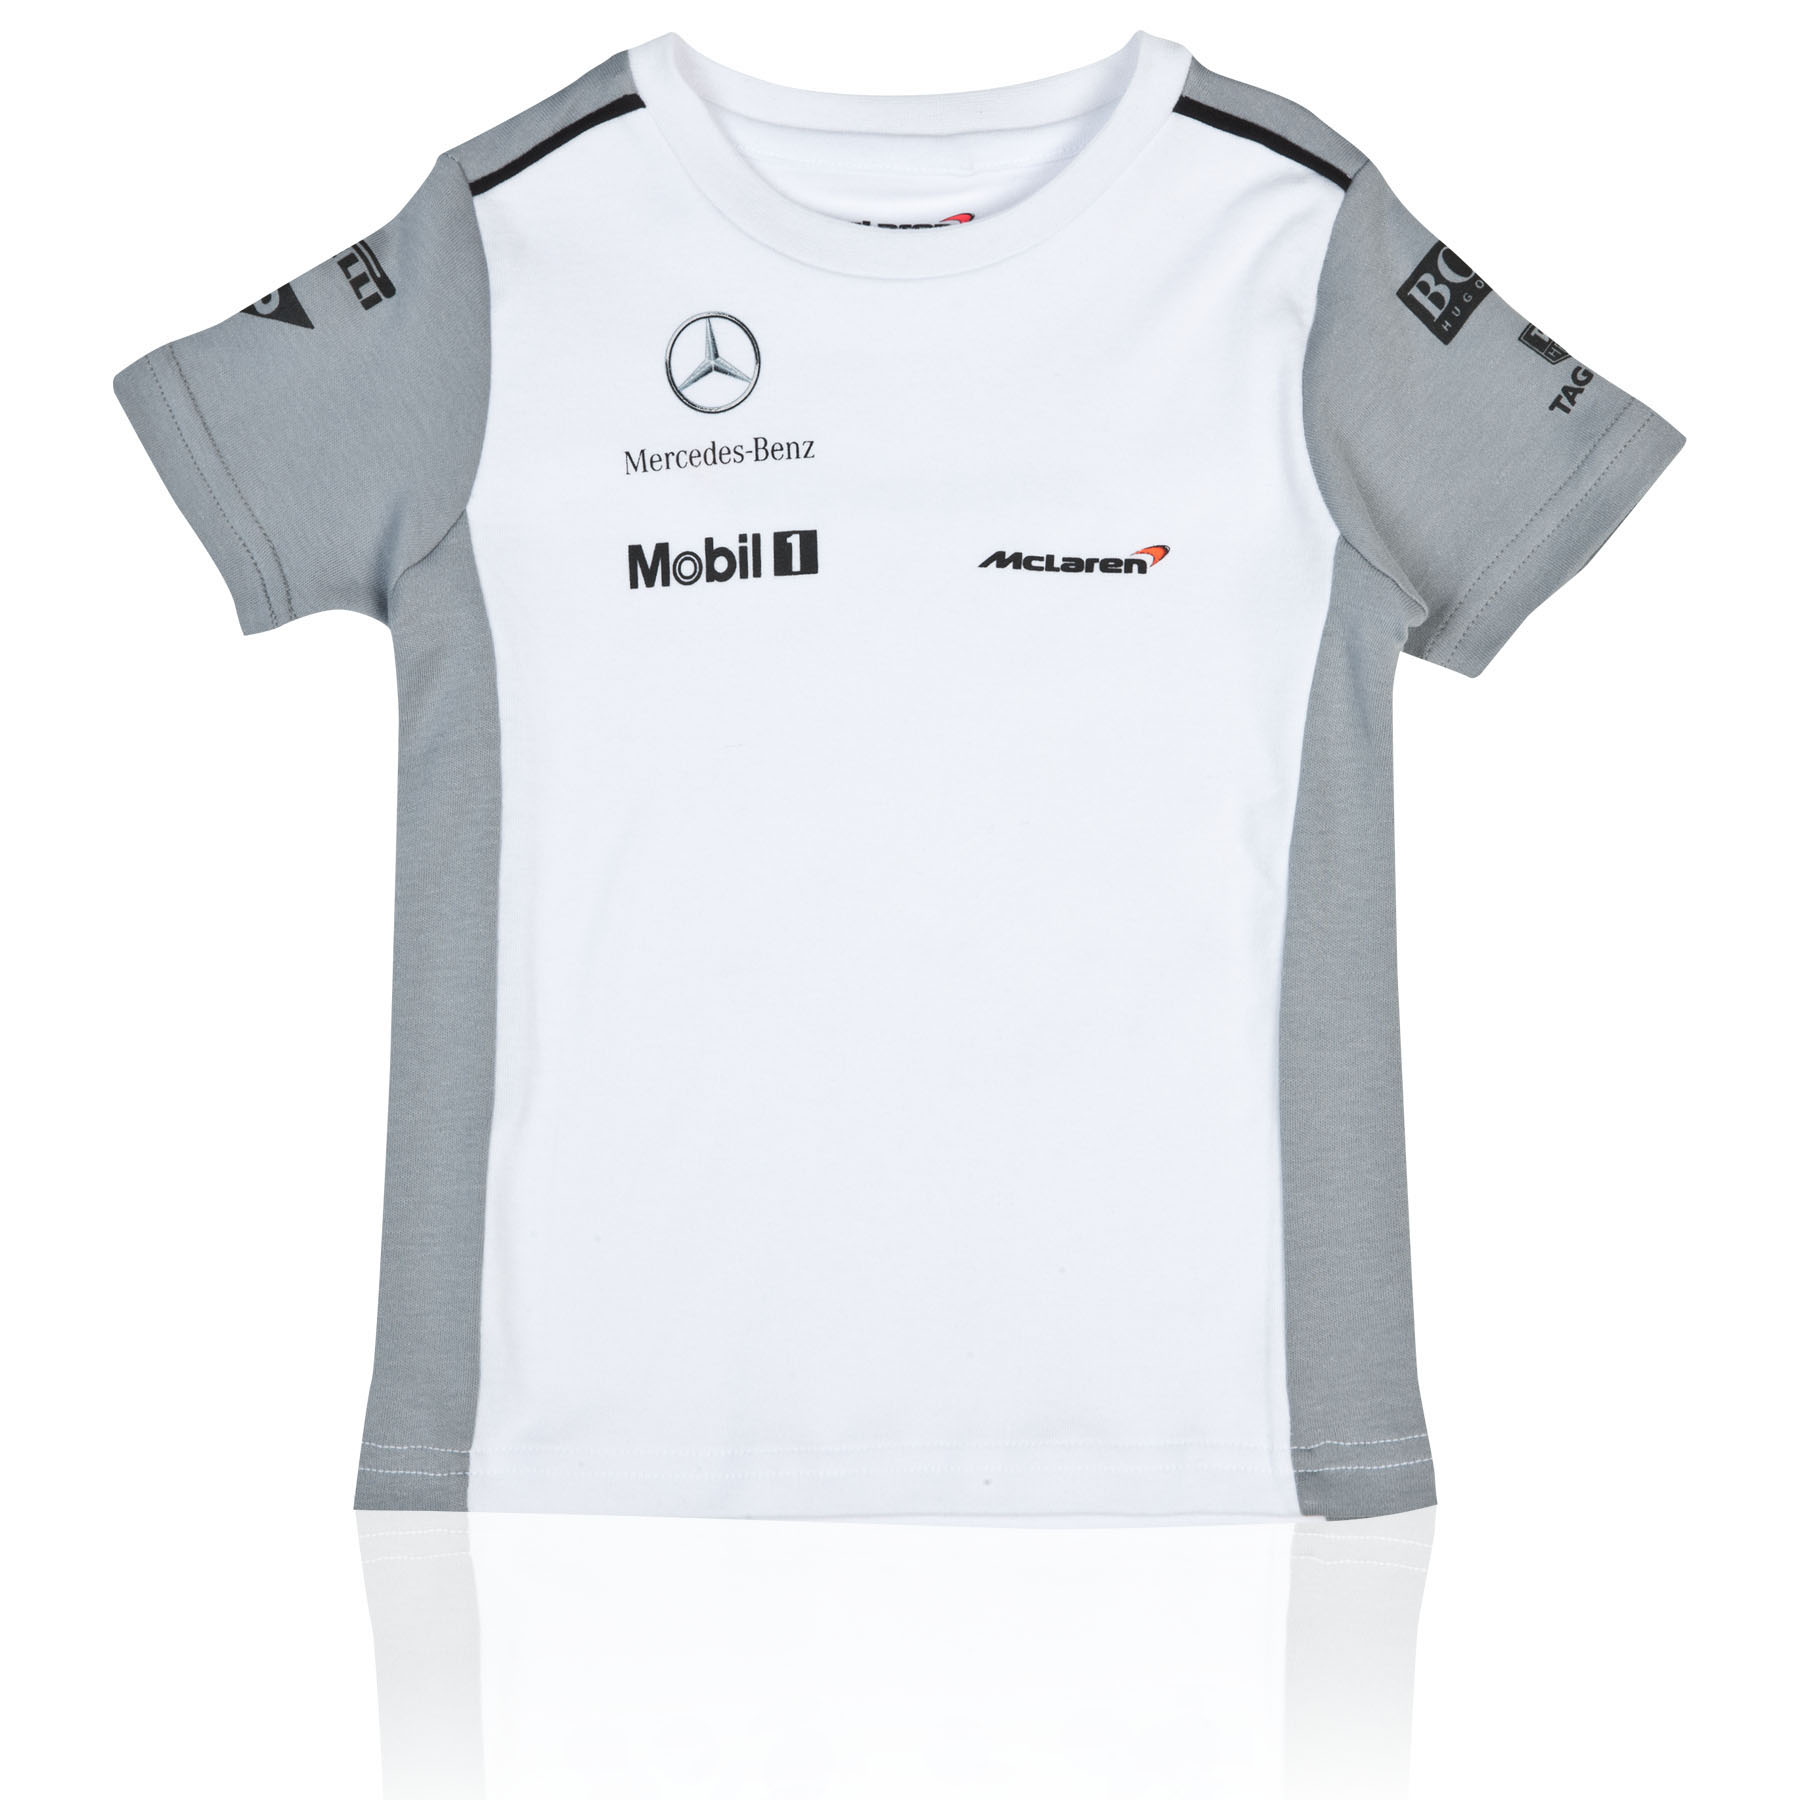 McLaren Mercedes 2014 Team T-Shirt - Baby